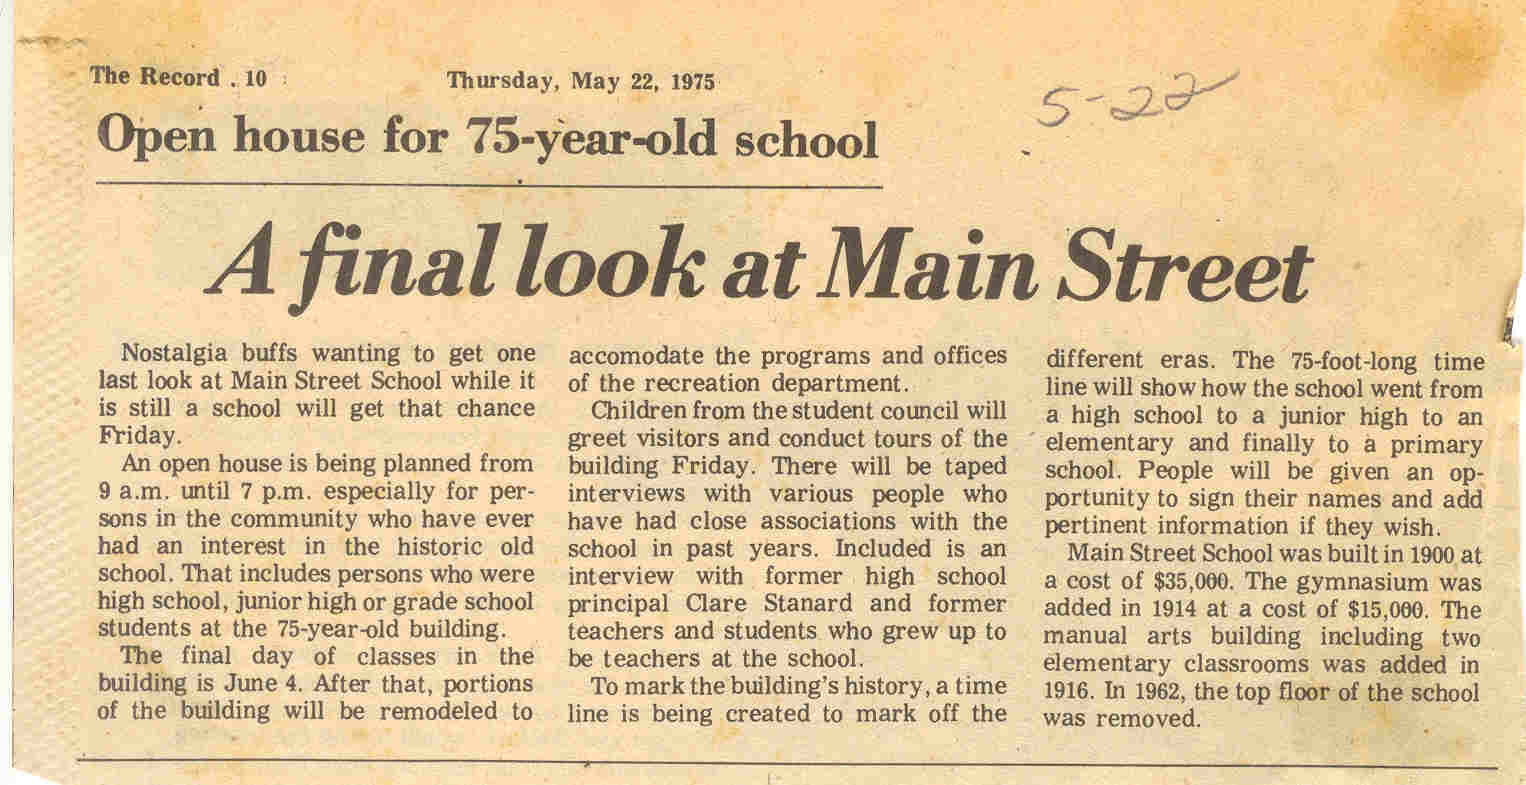 1975 Article